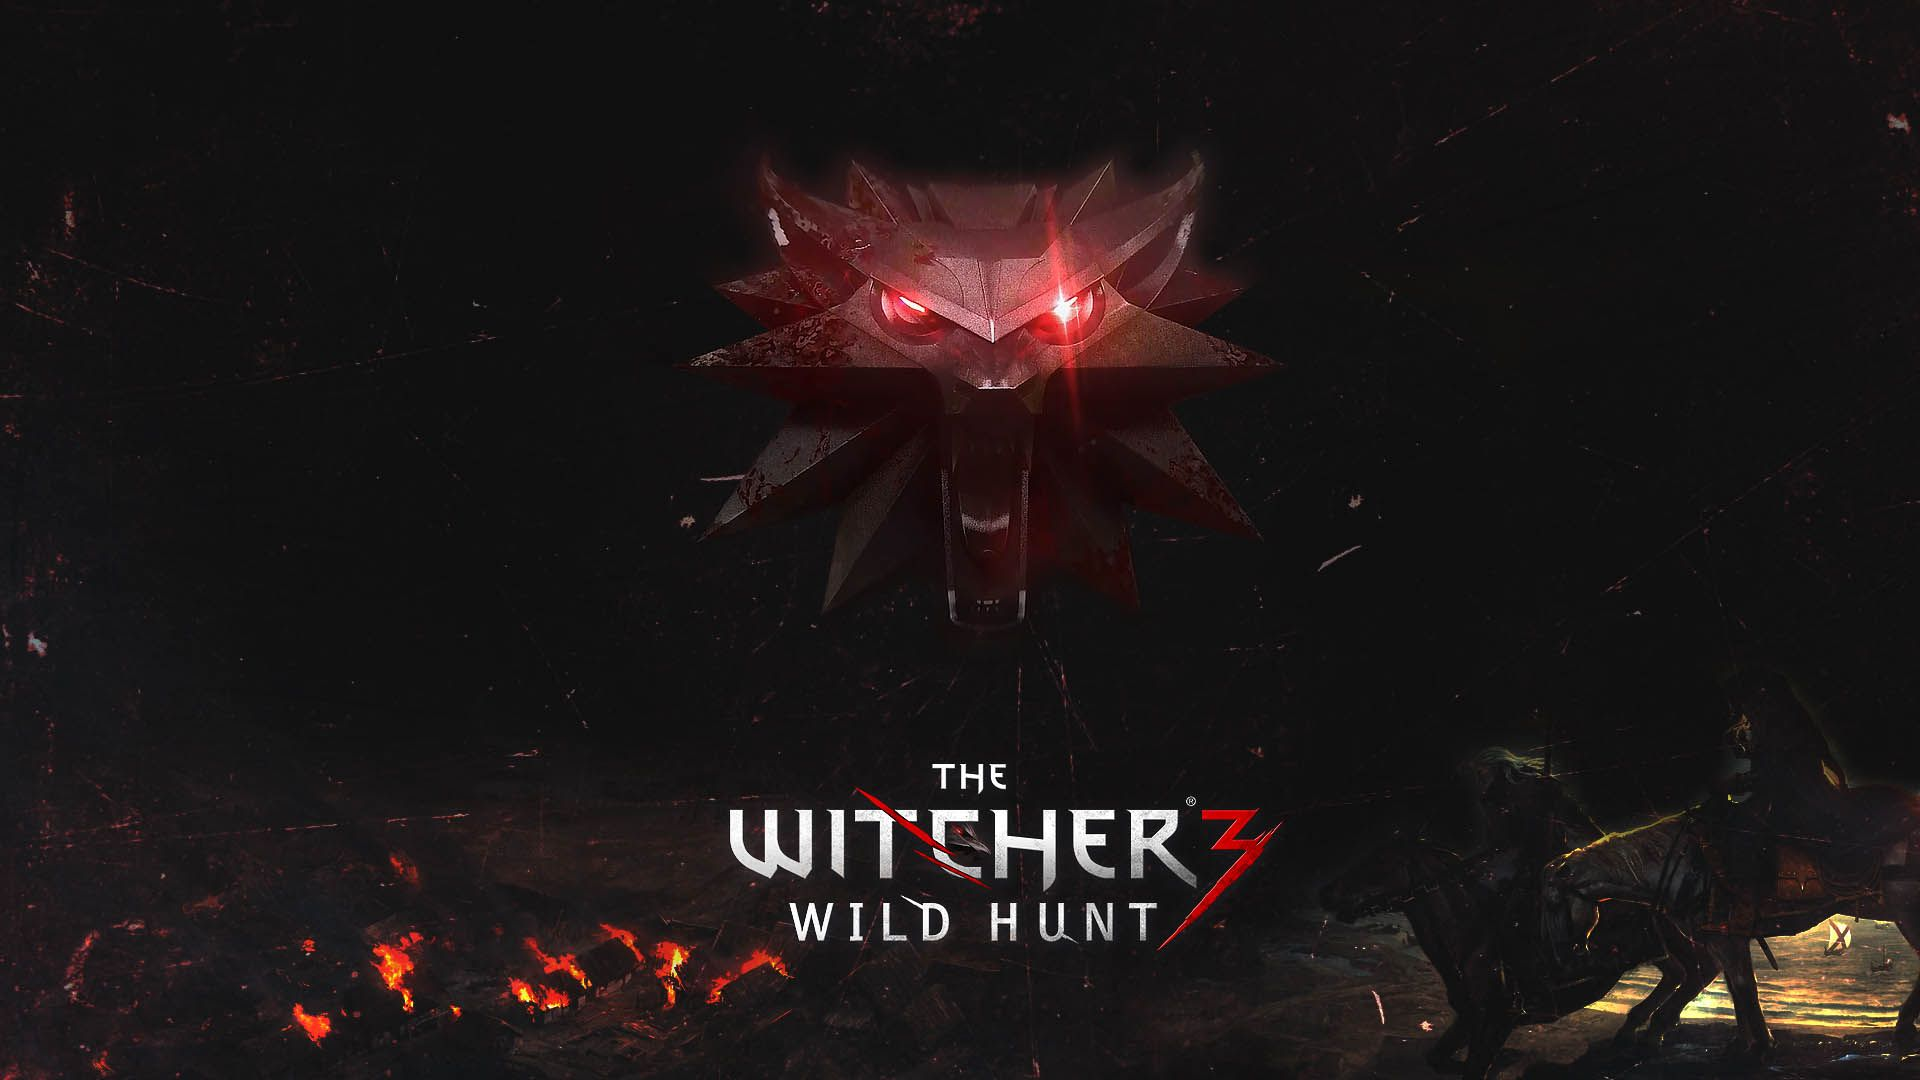 the witcher wild hunt succubus wallpapers hd wallpapers | wallpapers